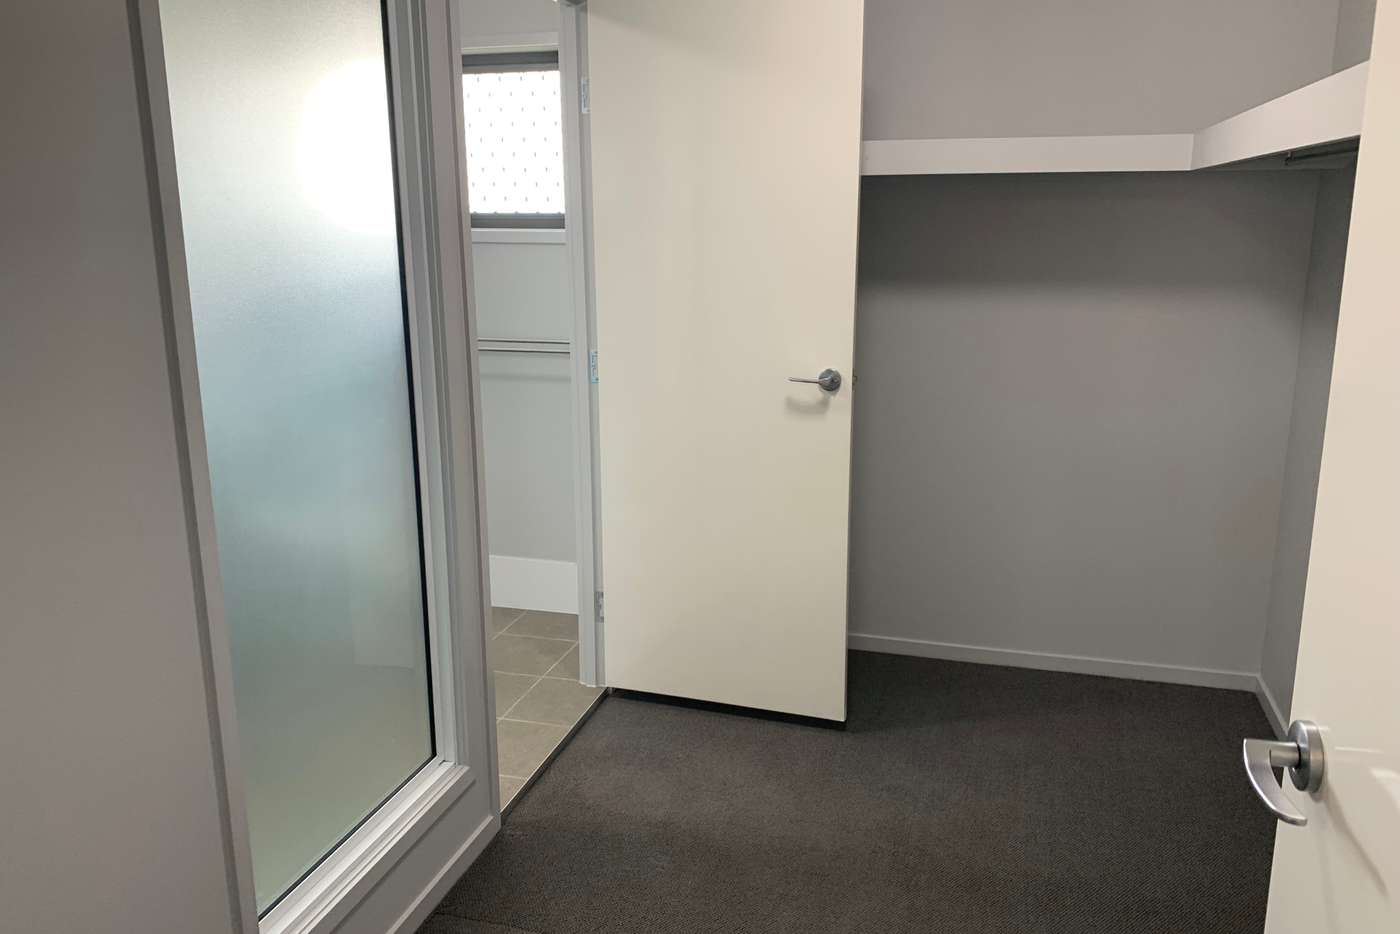 Sixth view of Homely townhouse listing, 2 Kerr Rd West, Kallangur QLD 4503